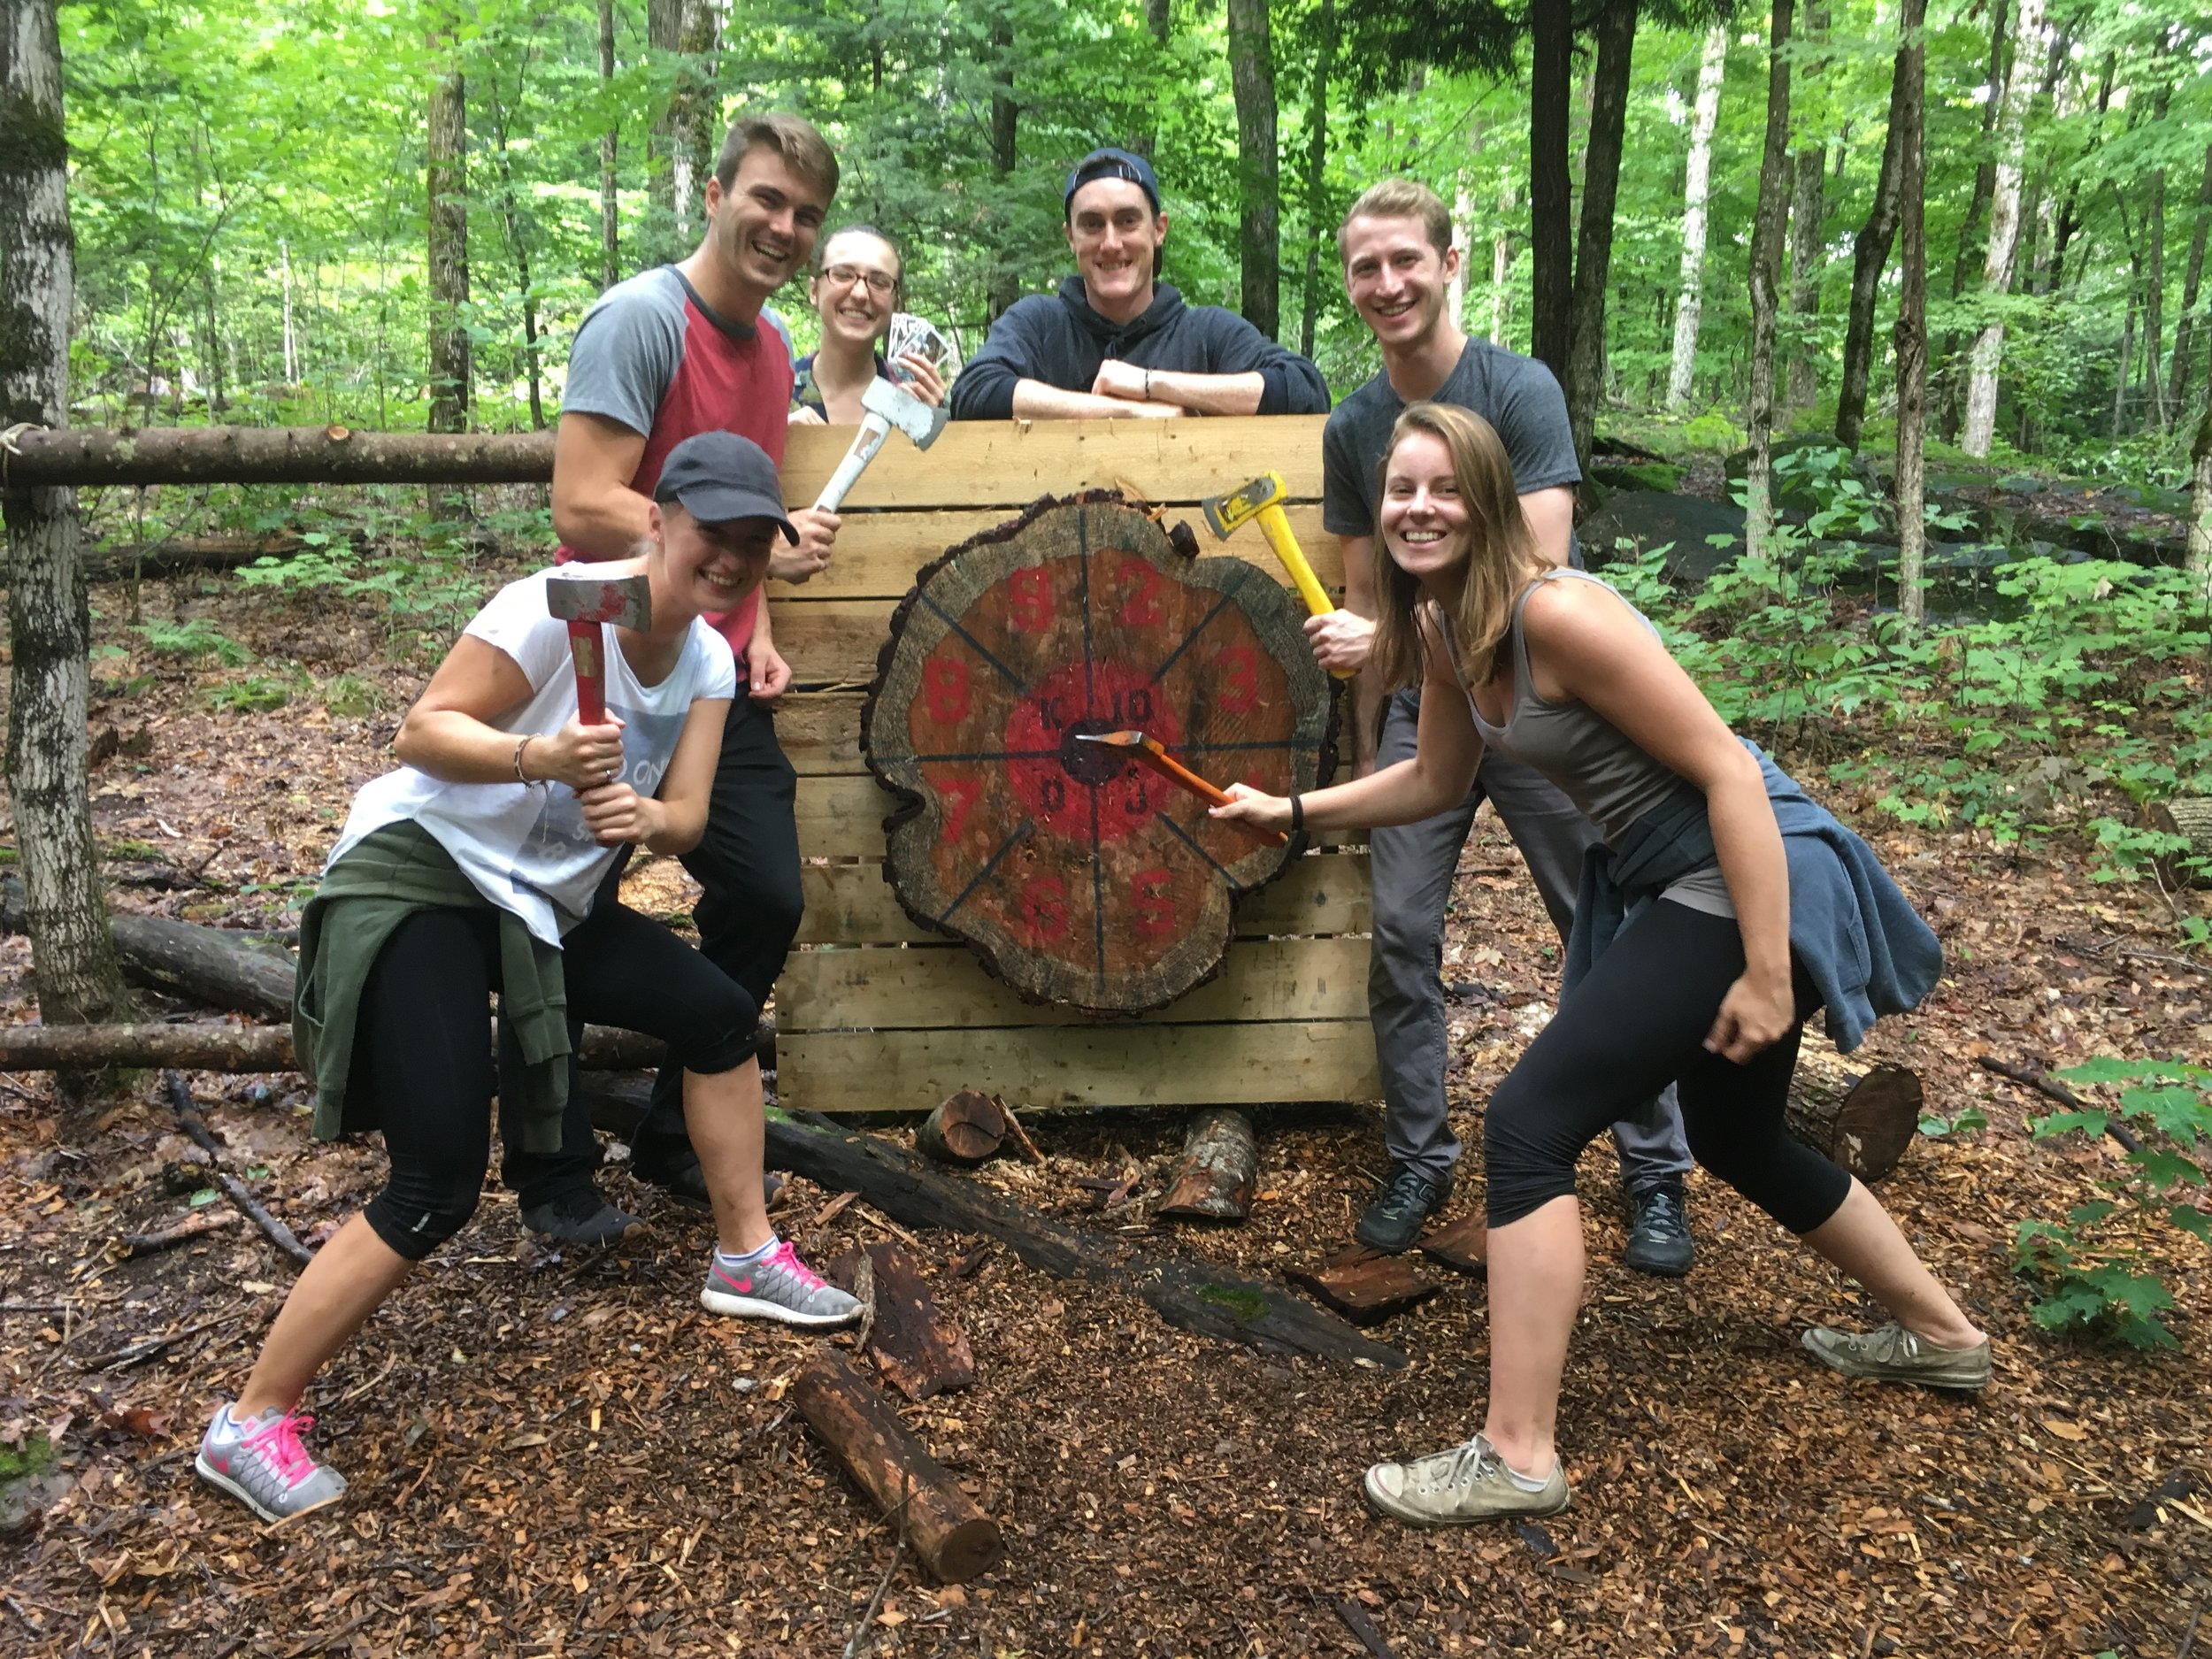 Axe Throwing muskoka Style - Axe throwing in the Forest and a game of poker combined.Bushpoker Axe Throwing, A Muskoka First